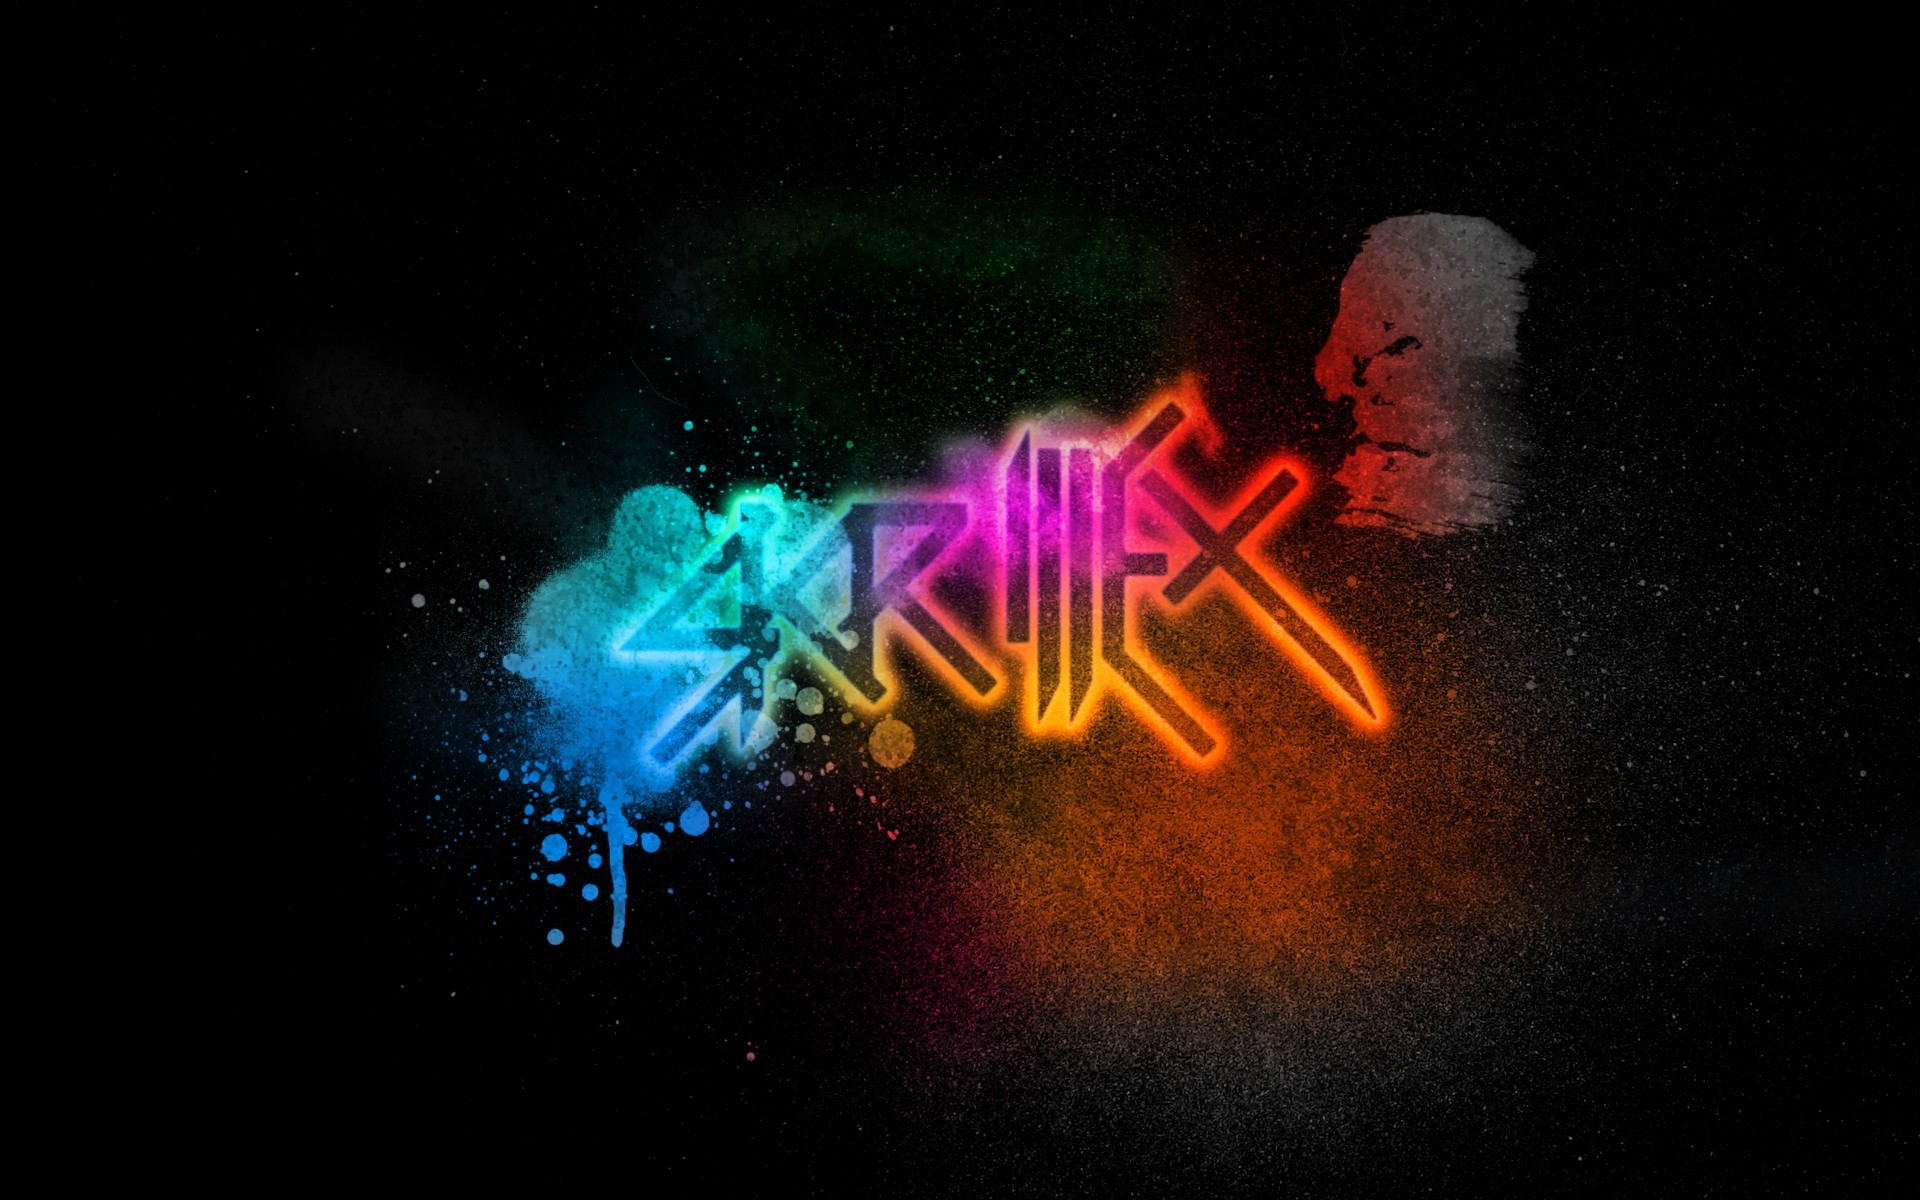 bass electric dubstep skrillex HD Wallpaper